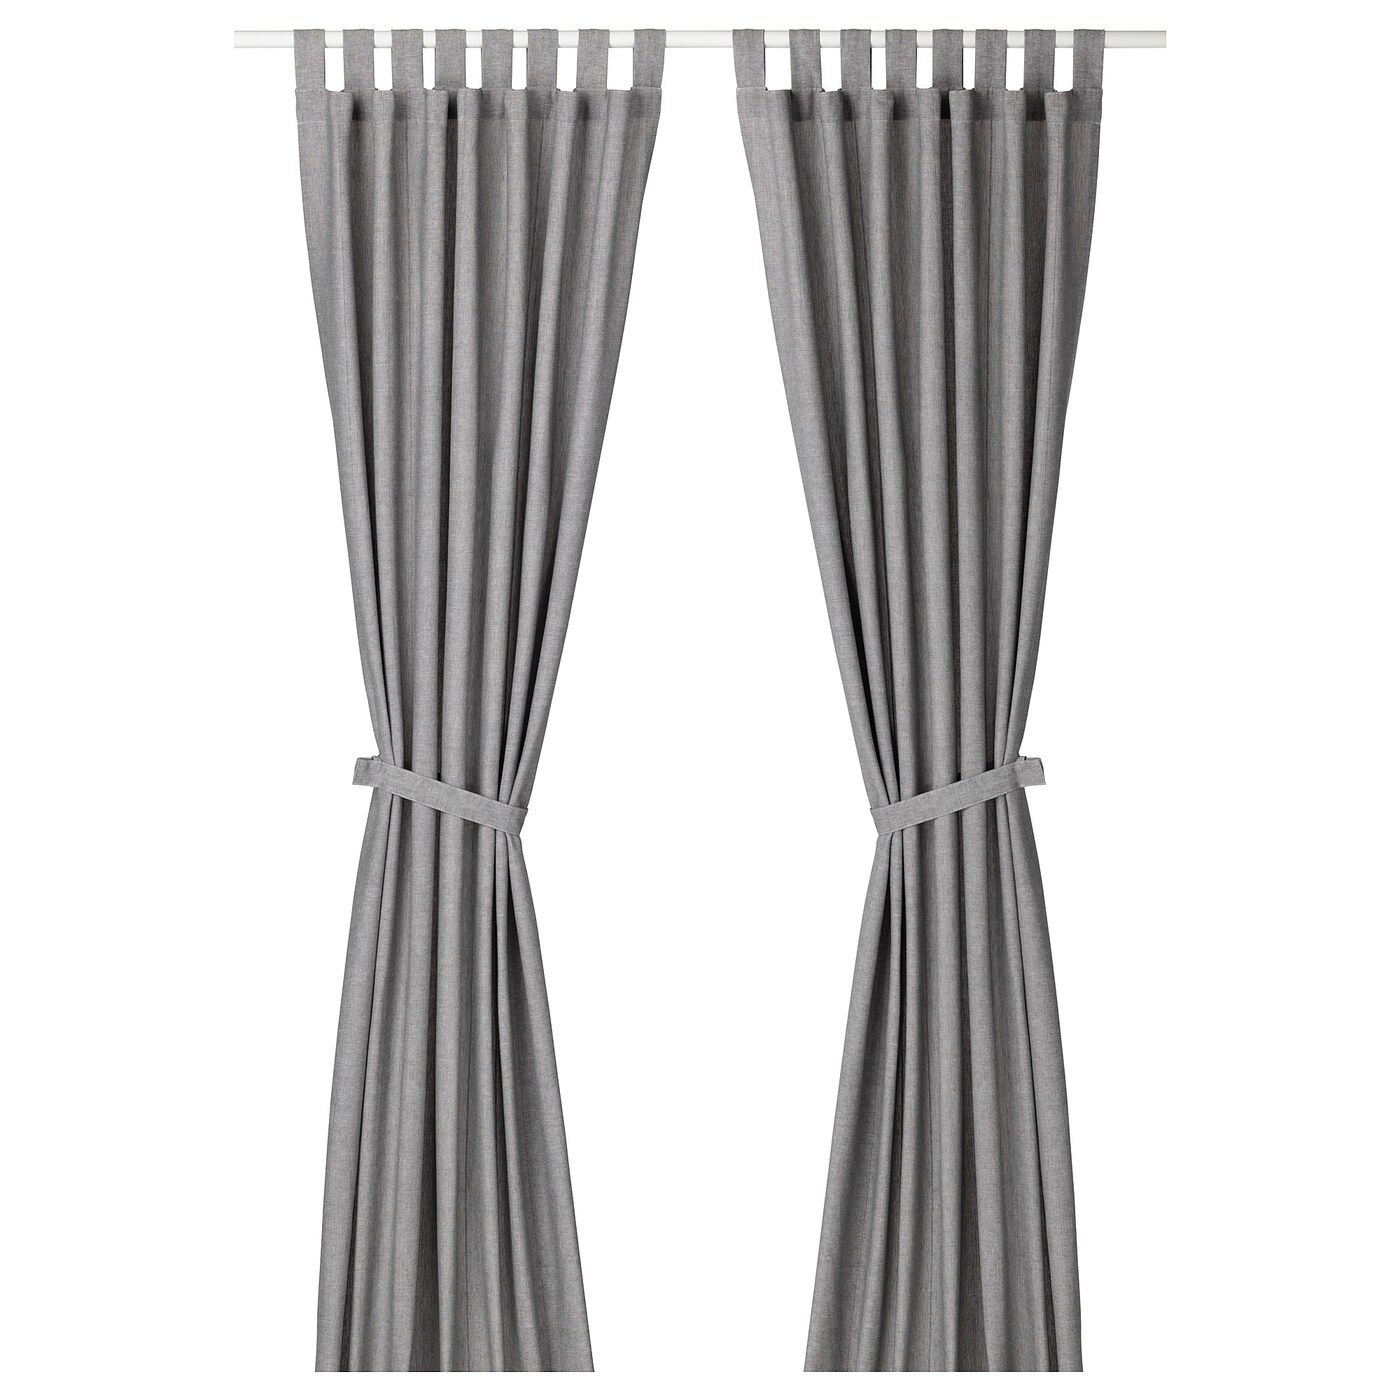 Lenda Curtains With Tie Backs 1 Pair Gray 55x118 In 2020